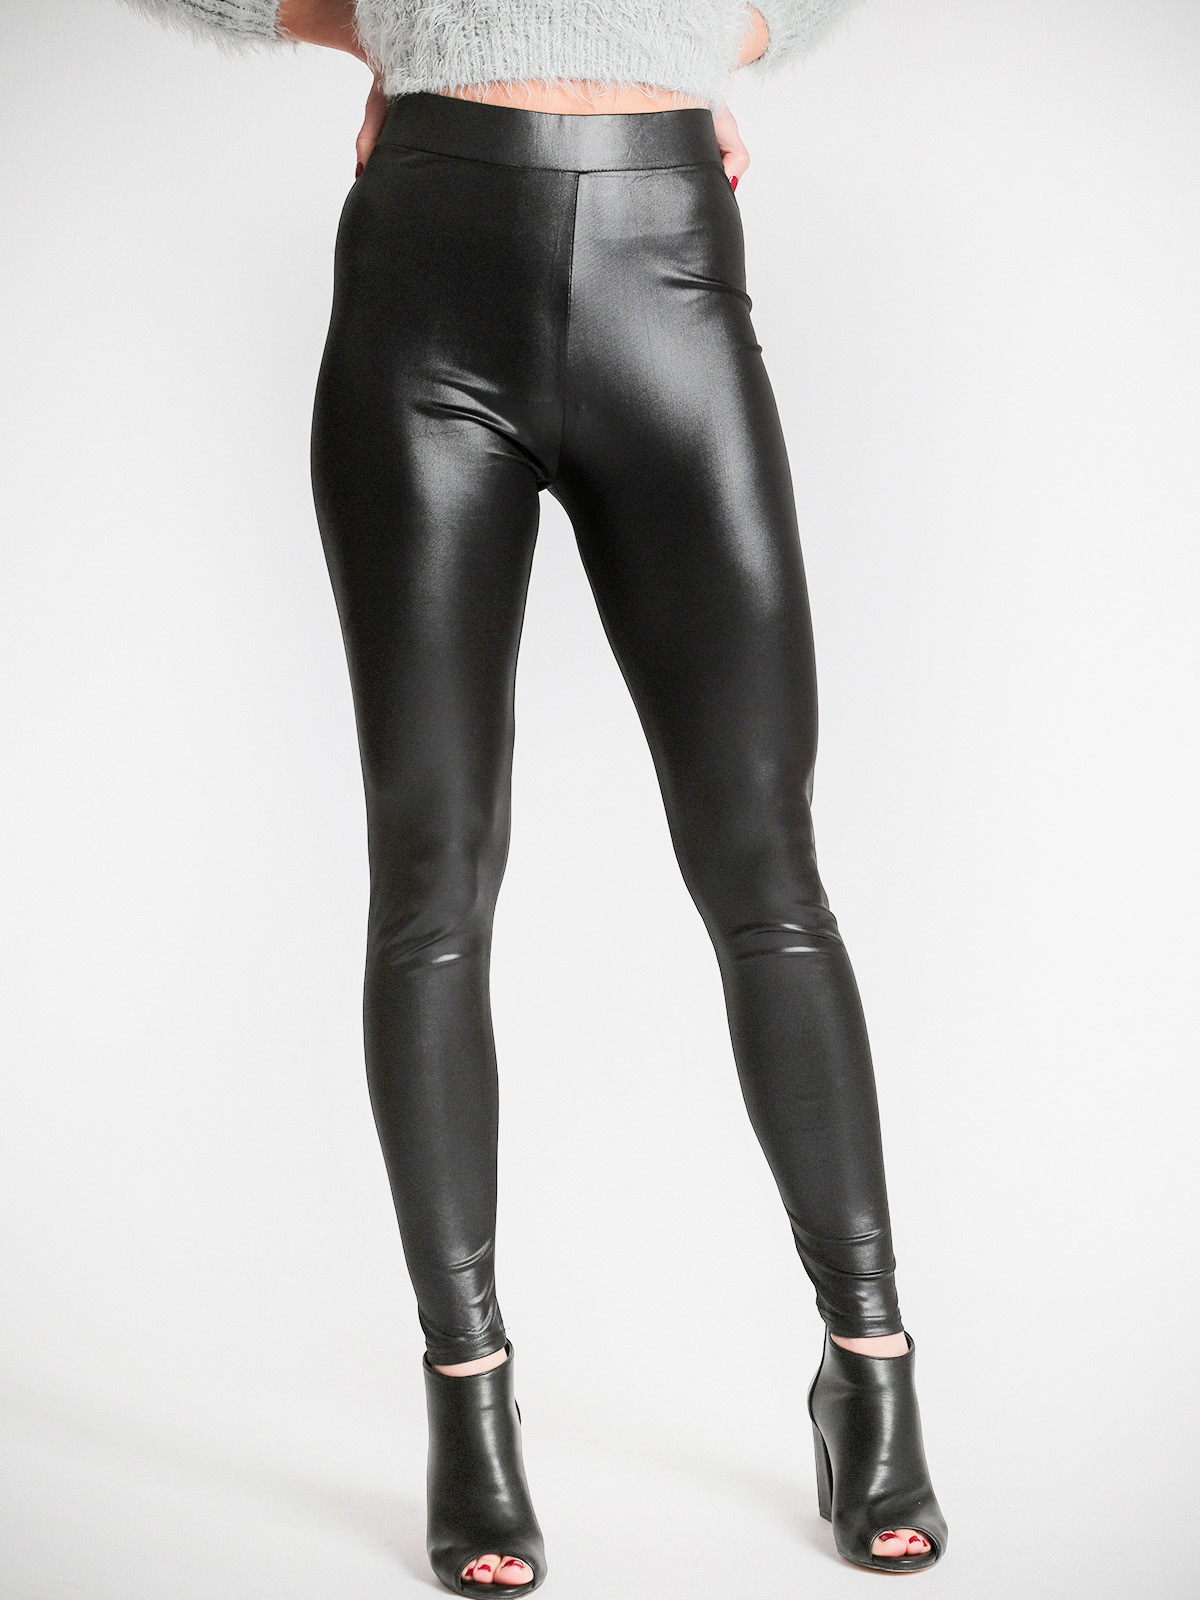 Black Skinny Slim Bright Color Legging